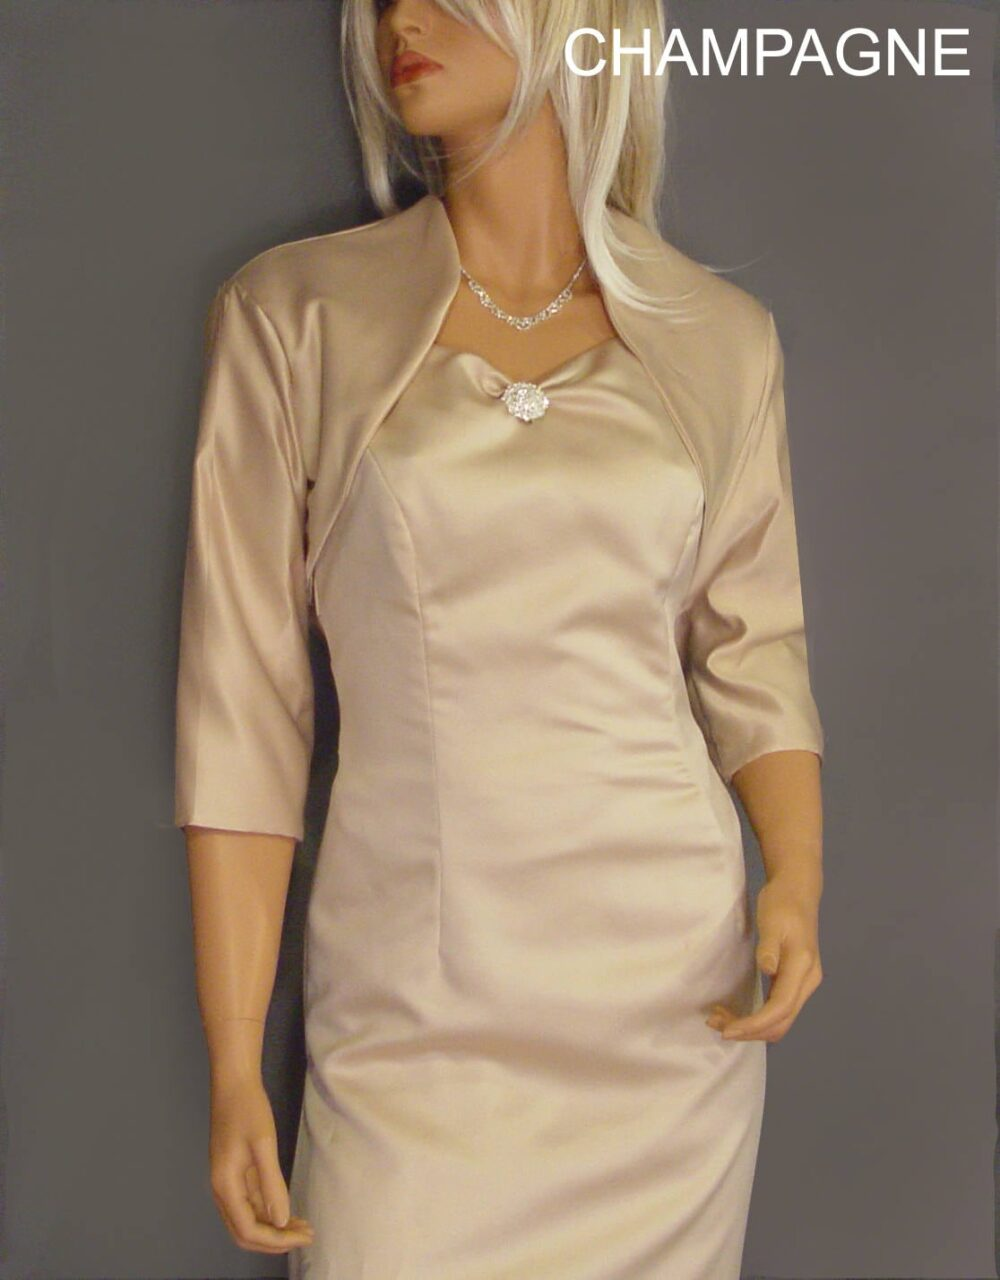 Satin Bridal Bolero Jacket Wedding Shrug Coat 3/4 Sleeve Cover Up Sba101 Available in Champagne & 5 Other Colors. Small Through Plus Size